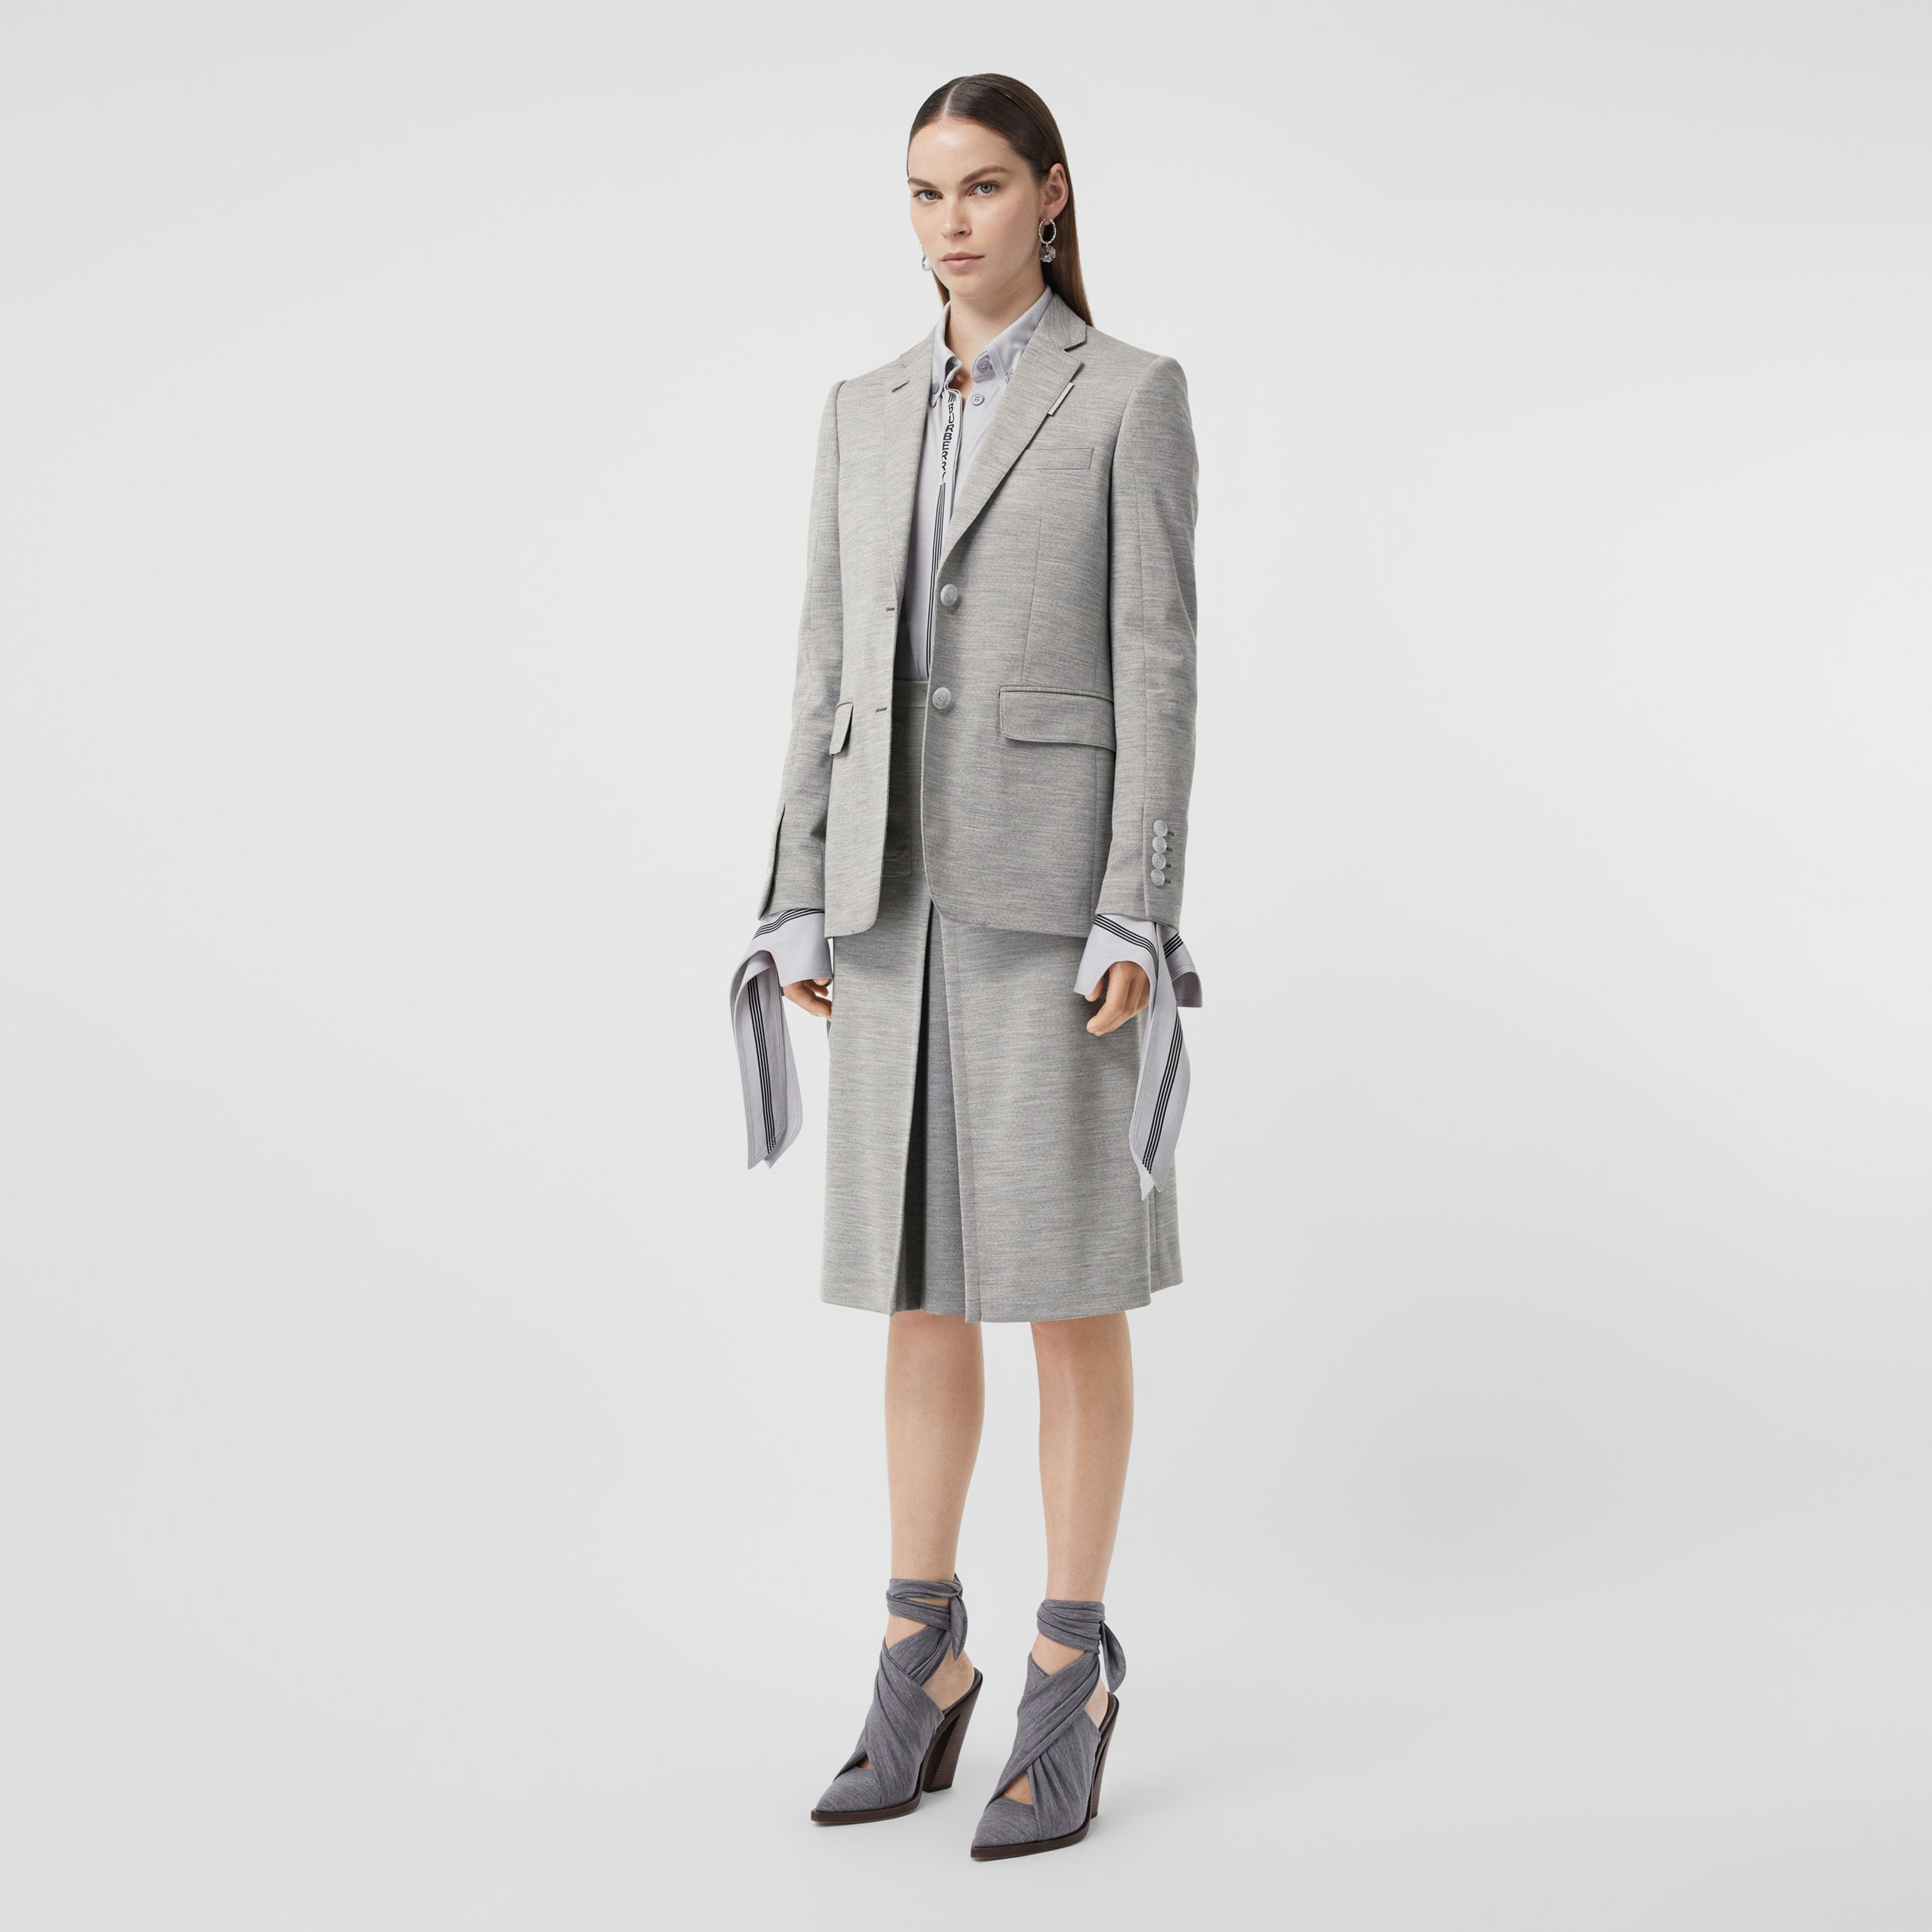 Technical Wool Jersey Blazer in Grey Taupe Melange - Women | Burberry Canada - 1